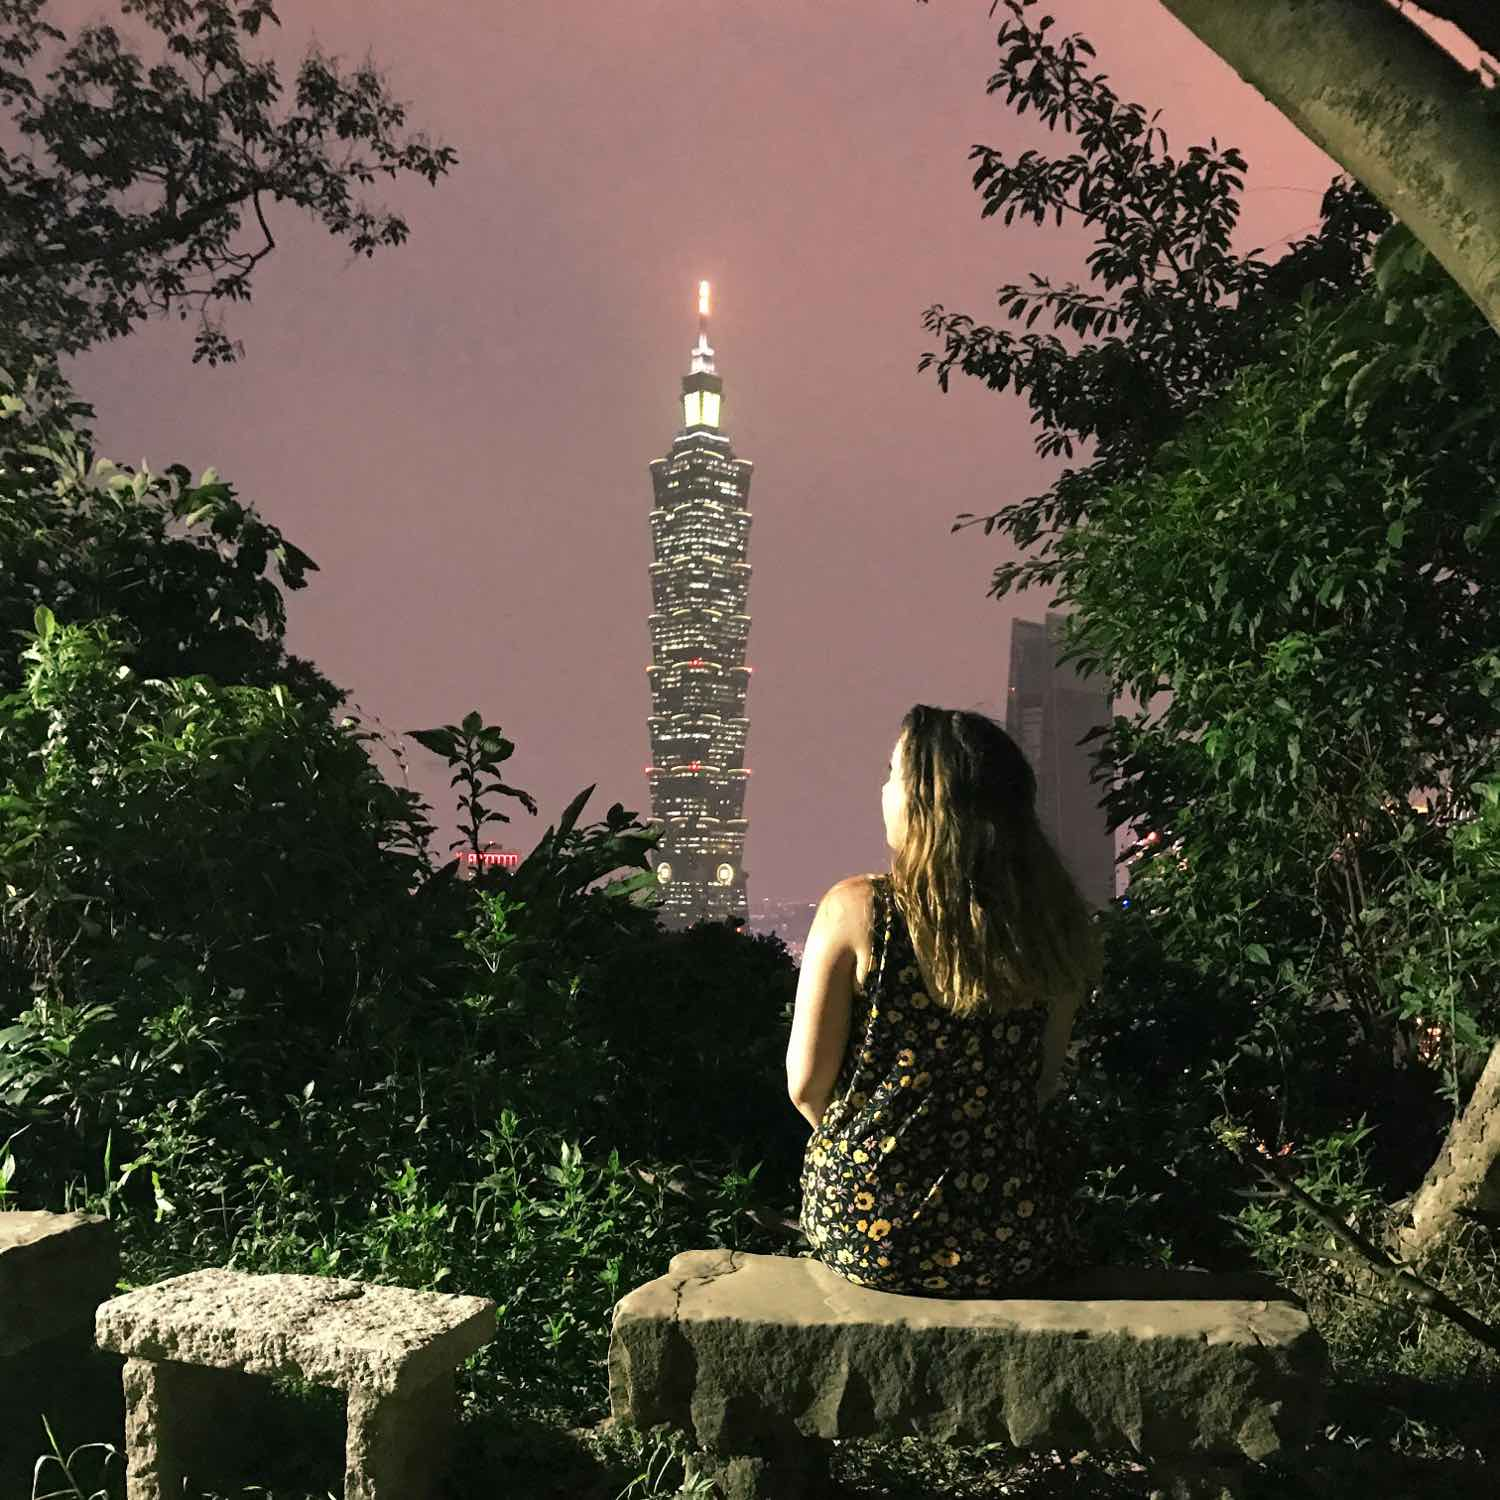 taipei 101 view from elephant mountain at night